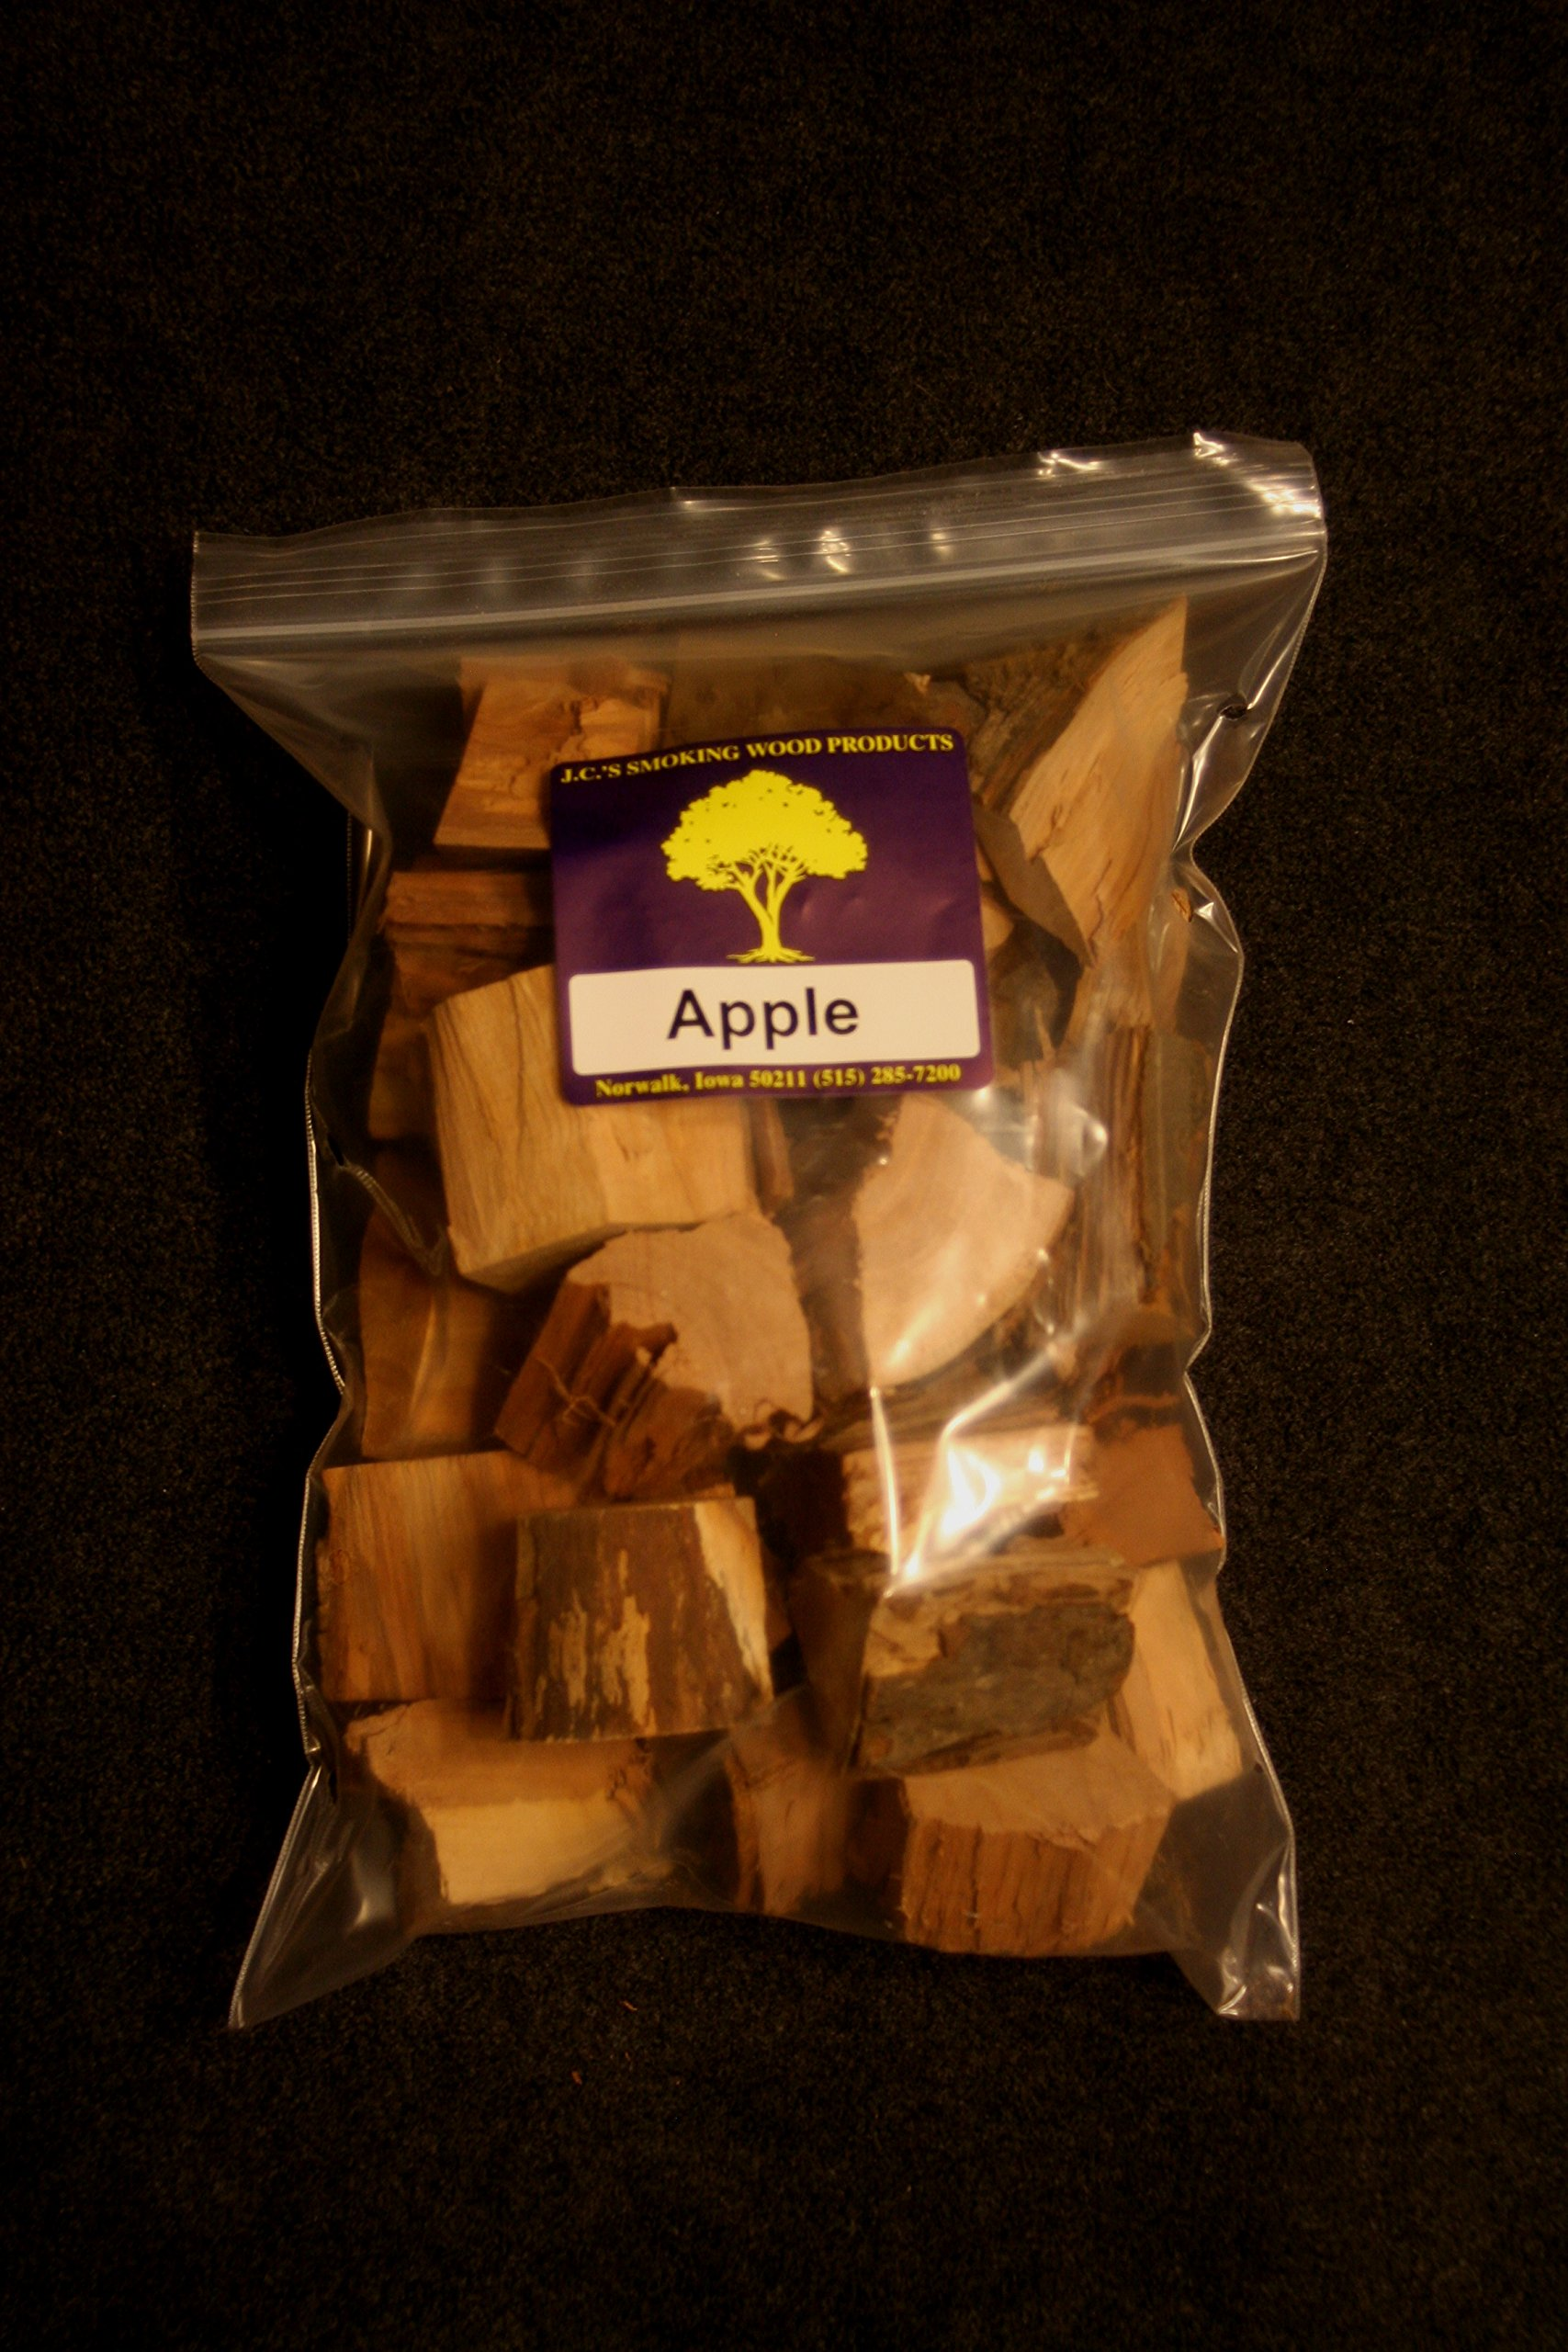 J.C.'s Smoking Wood Chunks - 4 PK Gallon Sized bag of Apple, Maple, Mulberry, Wild Black Cherry by J.C.'s Smoking Wood Products